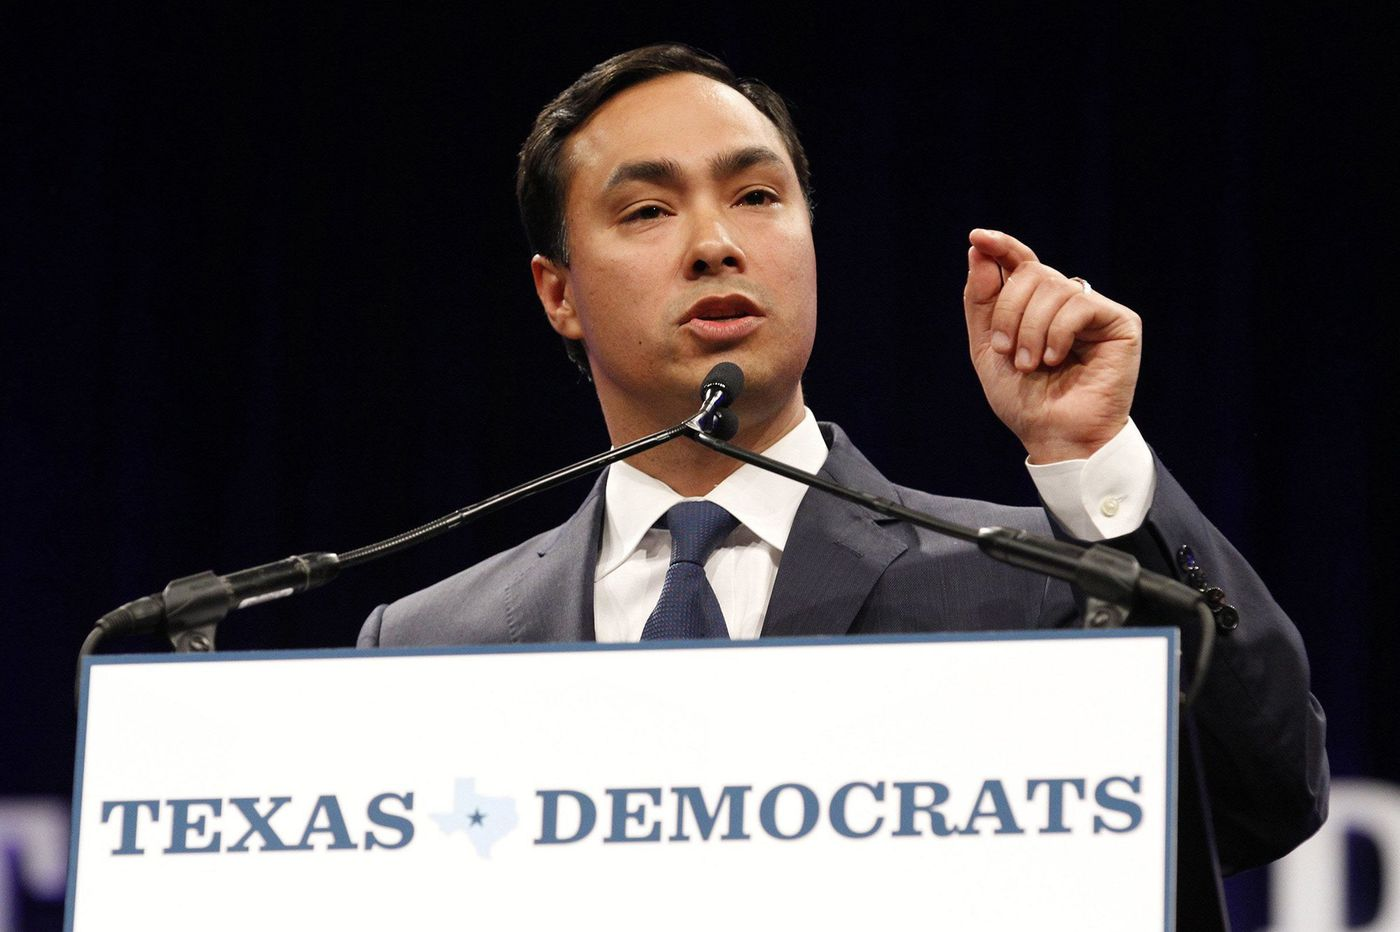 Joaquin Castro tweeted the names of top Trump donors. Republicans say it will 'encourage violence.'